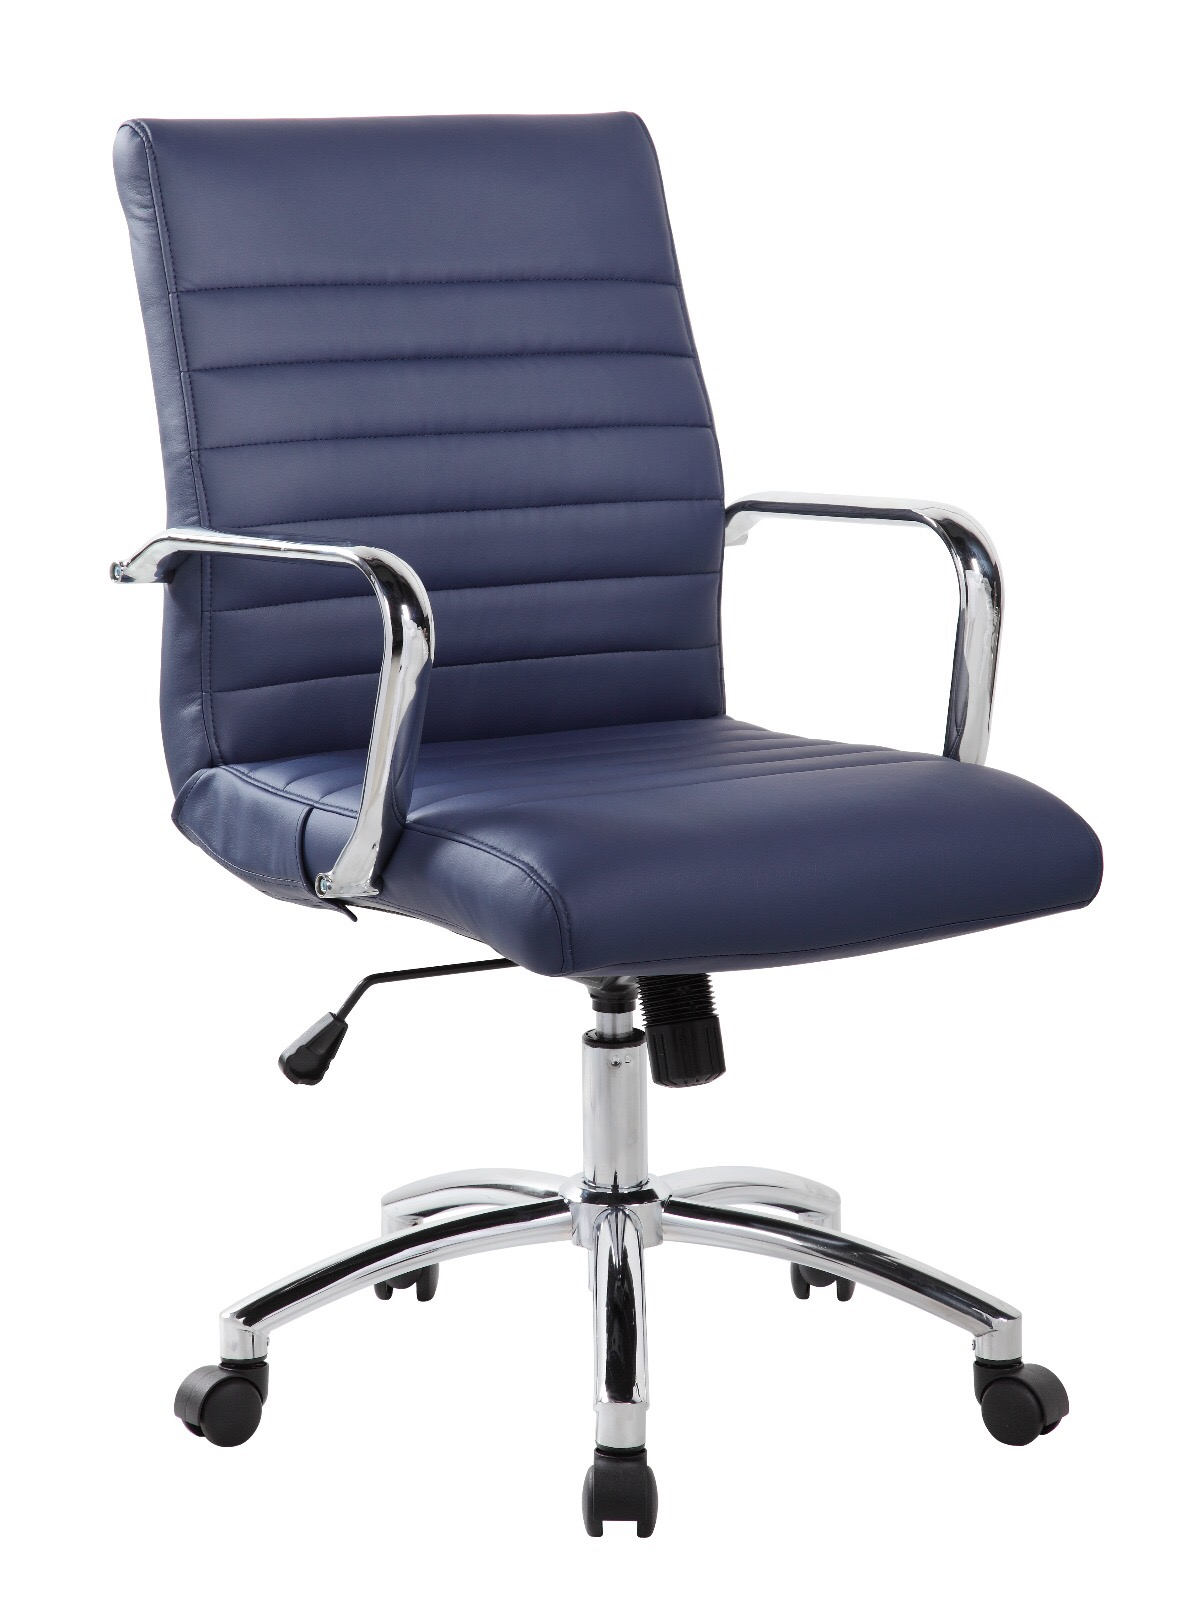 RealBiz Mid-Back Ribbed Faux Leather Office Chair